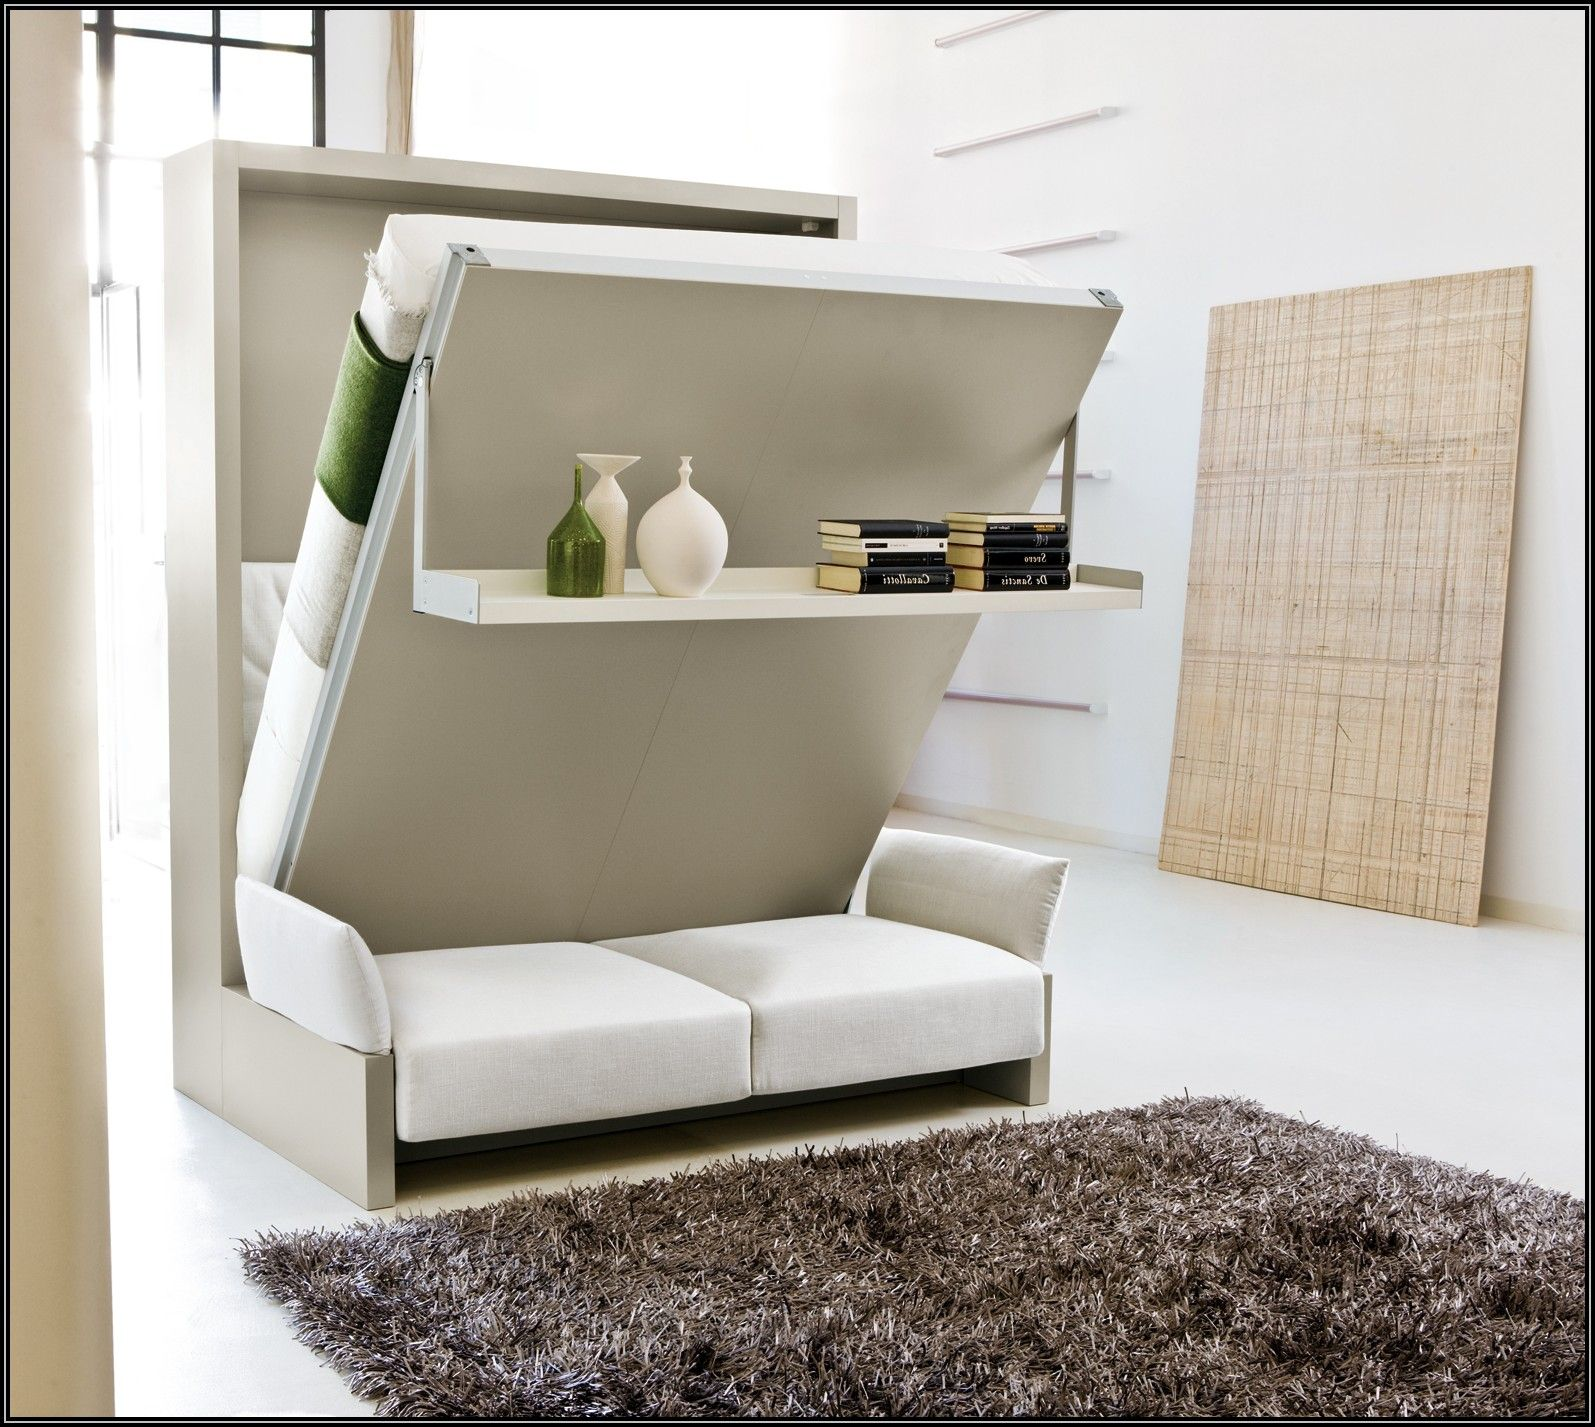 Save Small E In A Bedroom Using Murphy Bed Ikea Outstanding With Convertible Sofa Also Rug For Interior Design